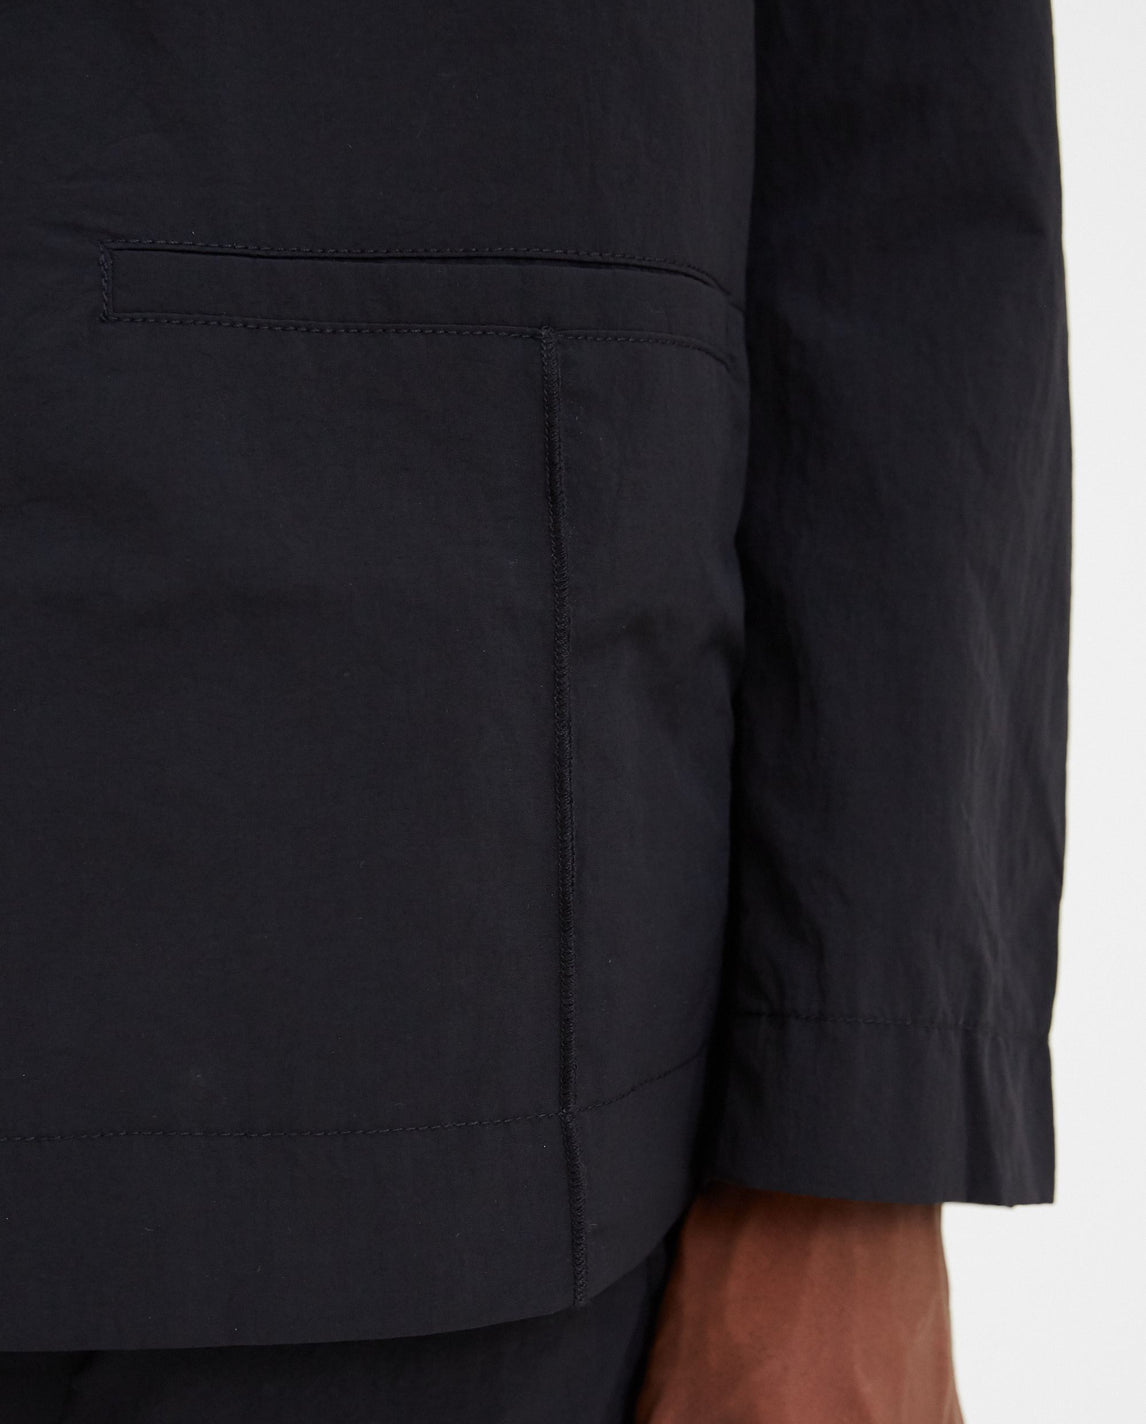 Woven Rhombus Badge Blazer - Black MENS A-COLD-WALL*